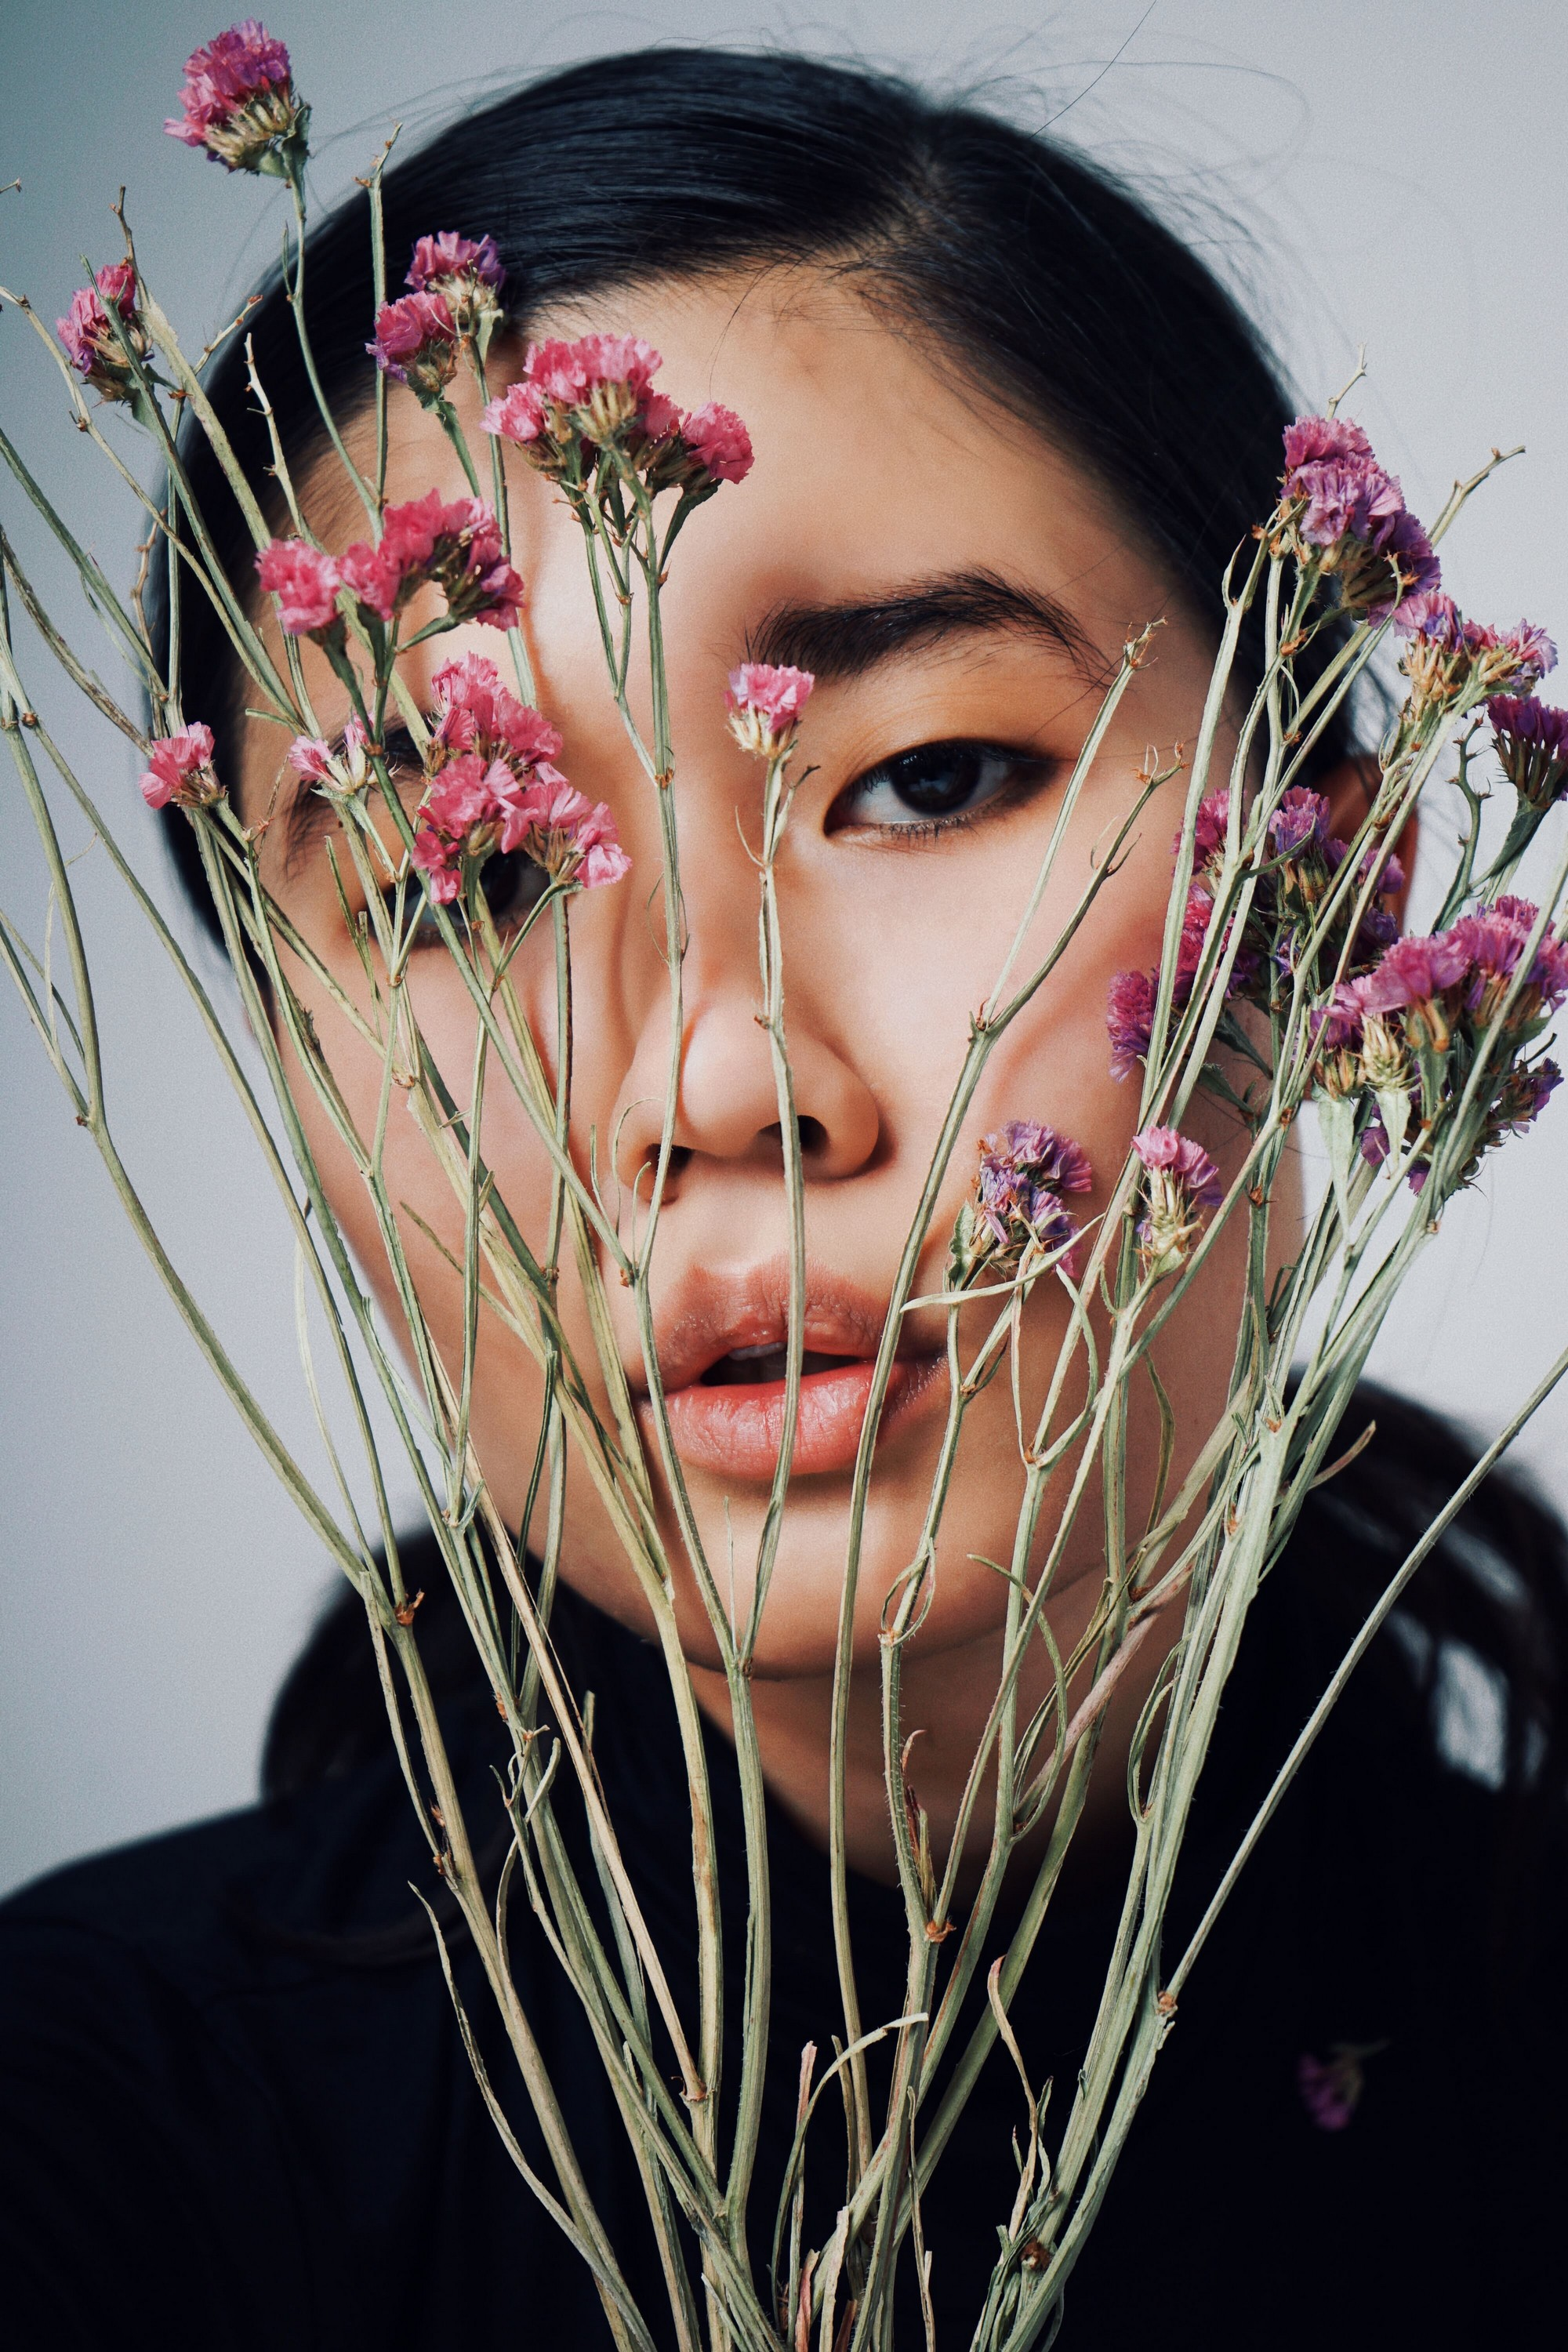 close up of womans' face posing whilst holding flowers in front of her face.